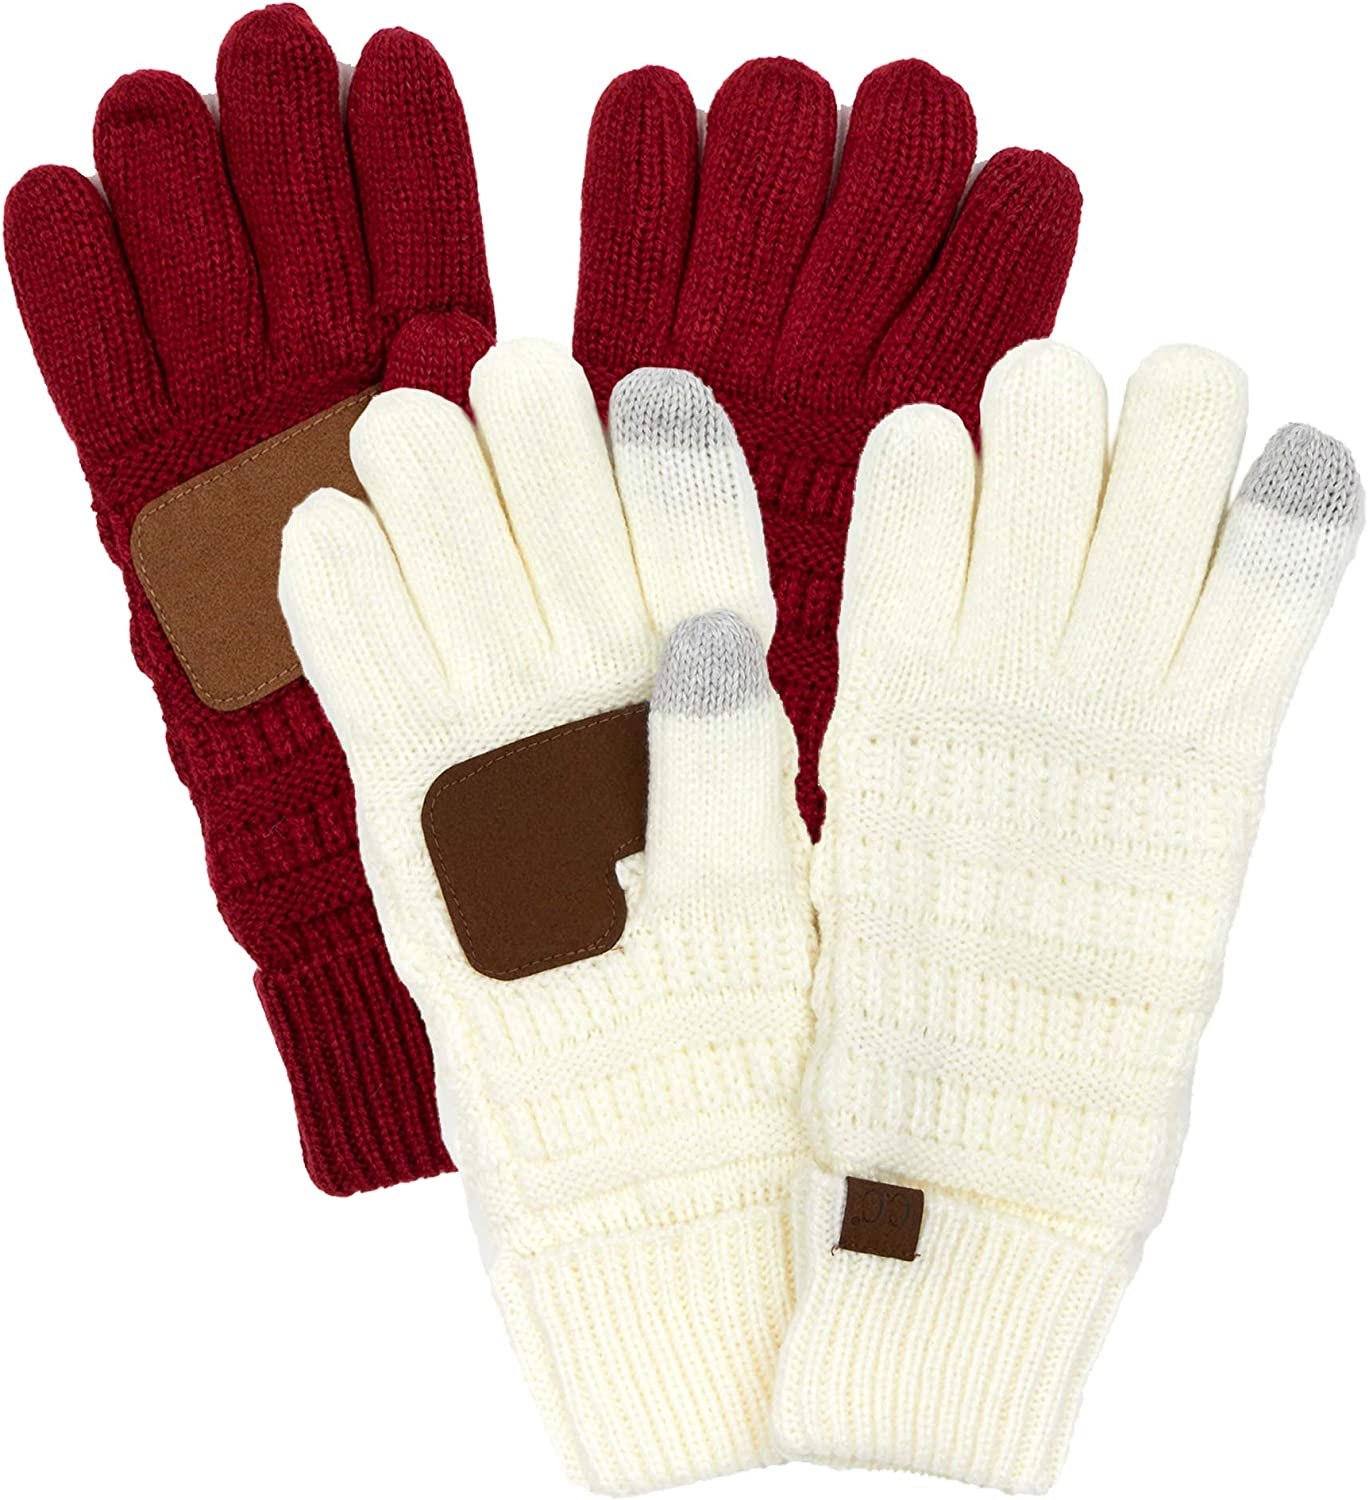 Lined Texting Gloves: Ivory & Red